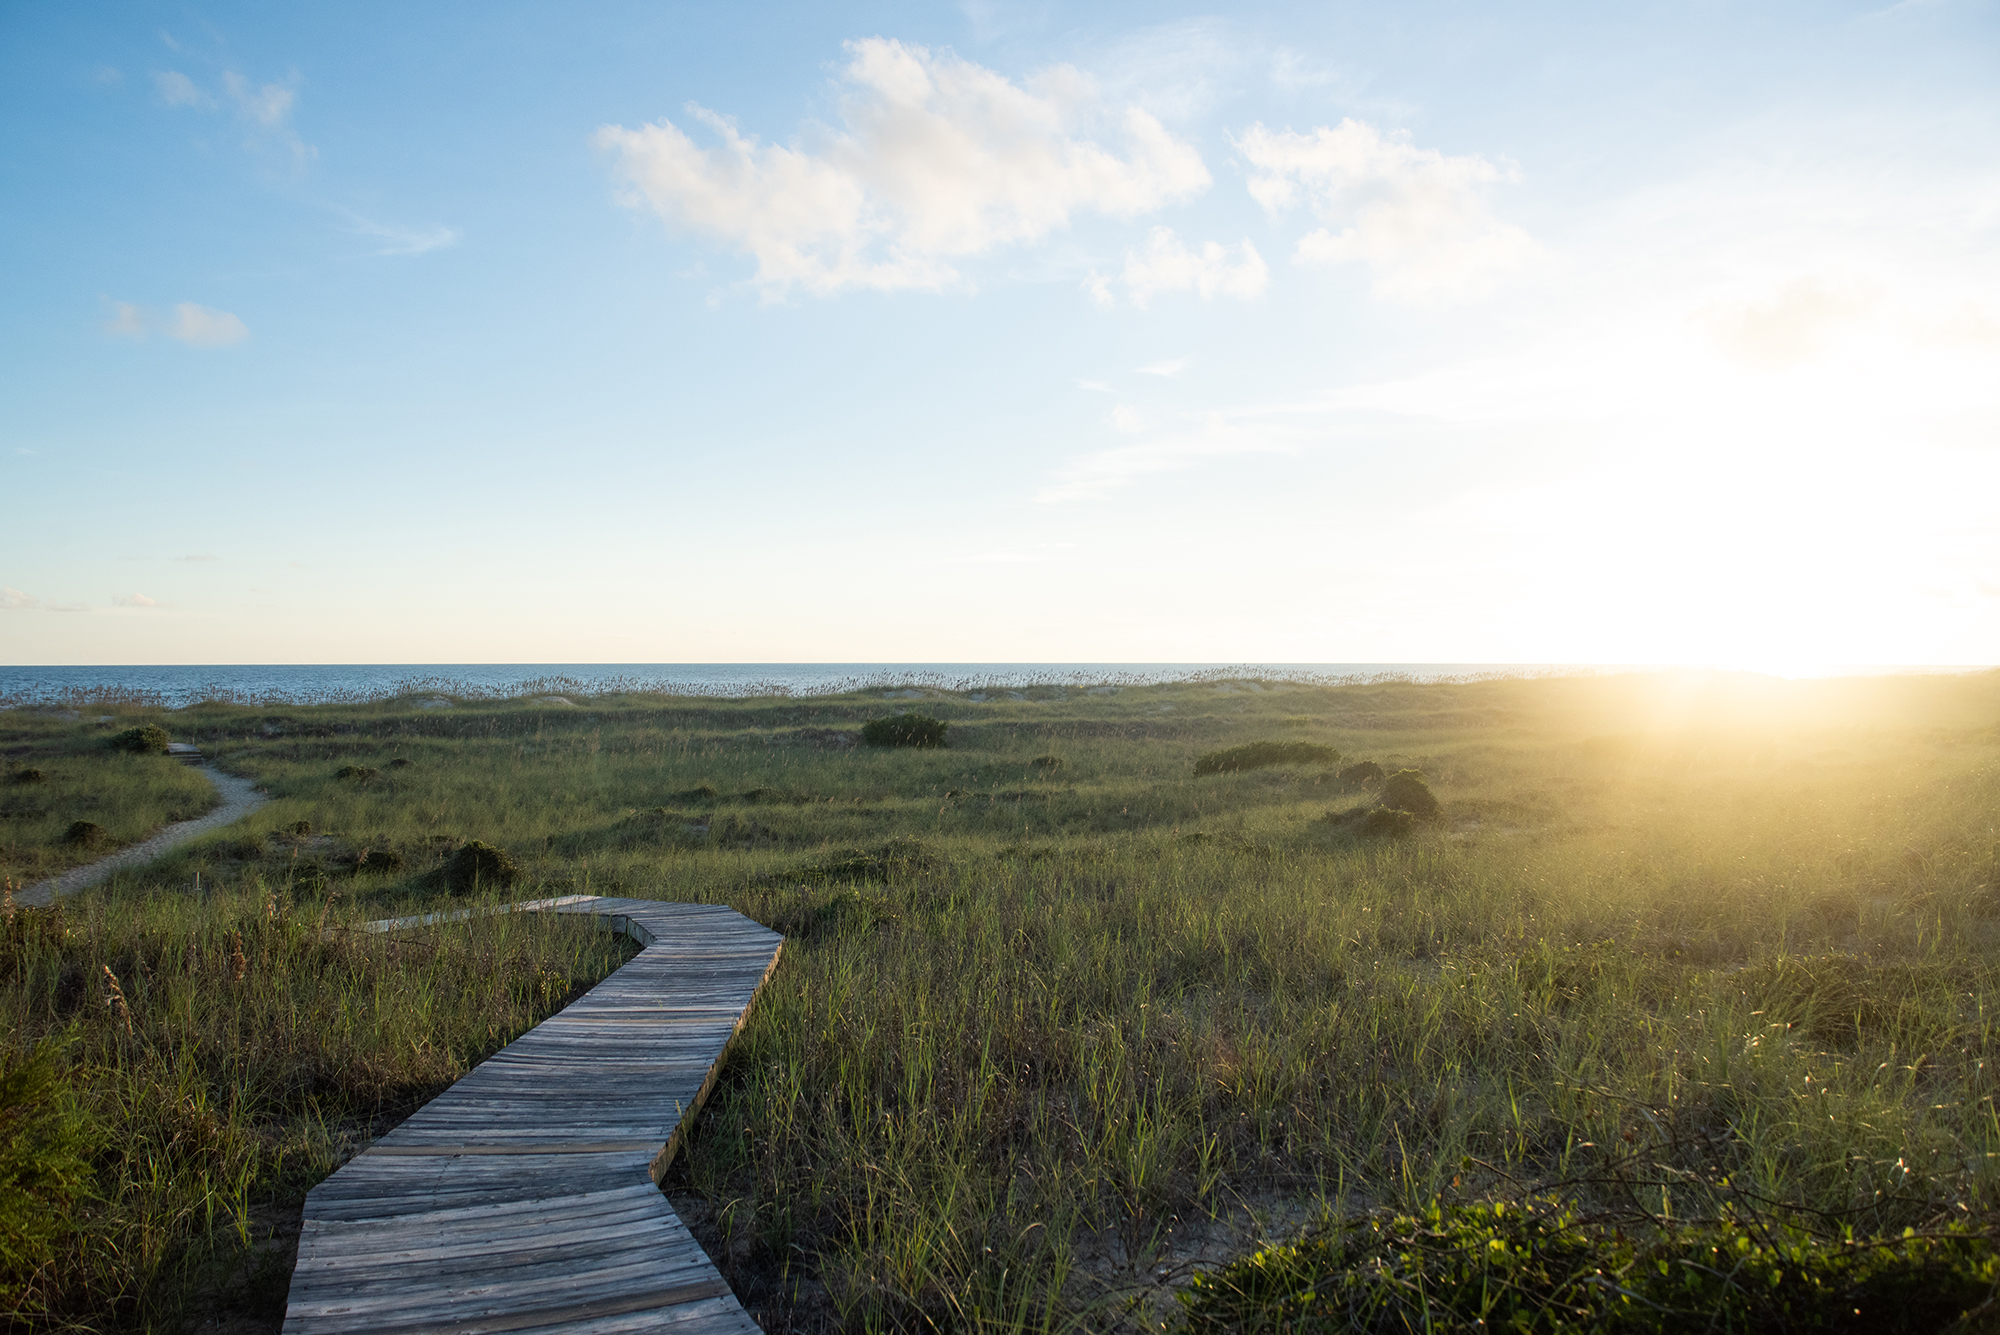 a wide shot of the beach and grasslands on Bald Head Island